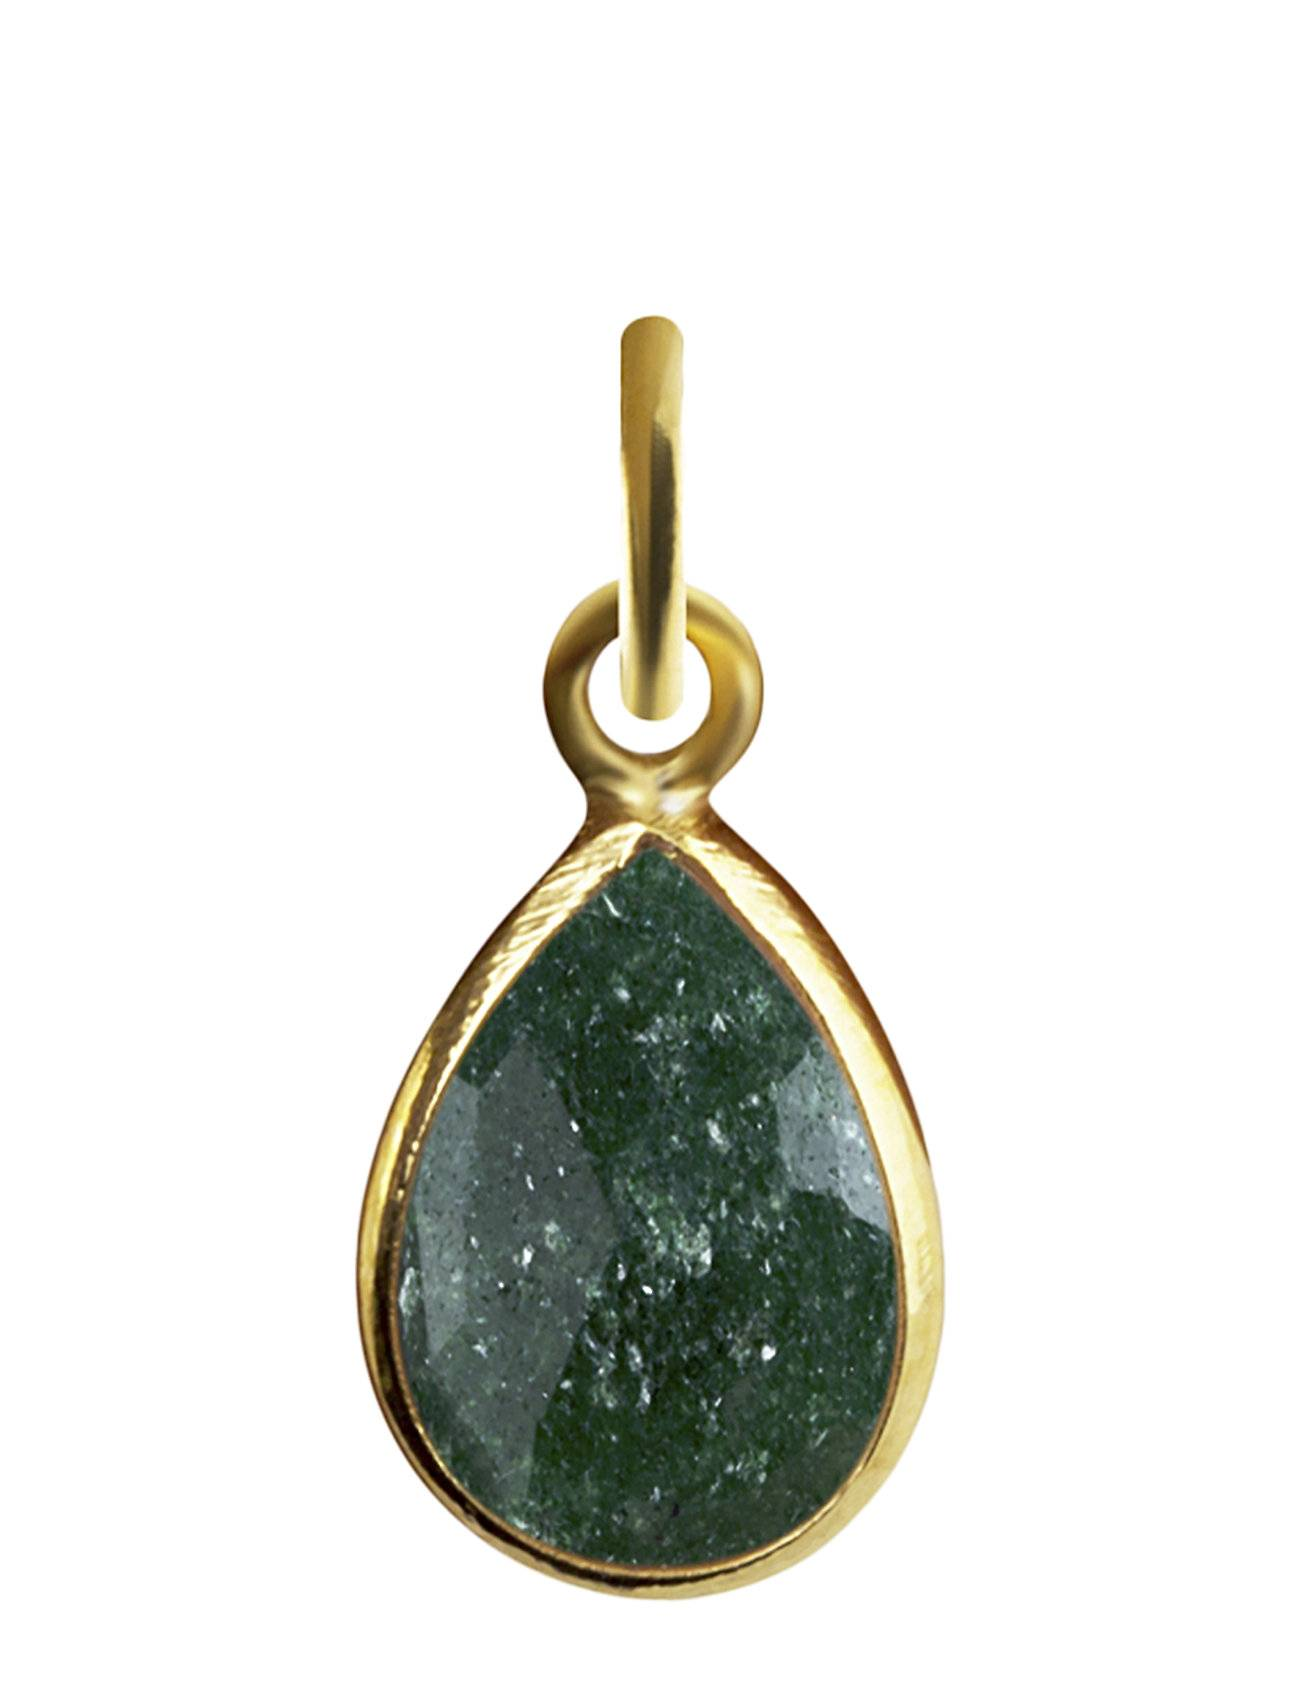 Syster P Beloved Stone Pendant Gold Green Aventurine